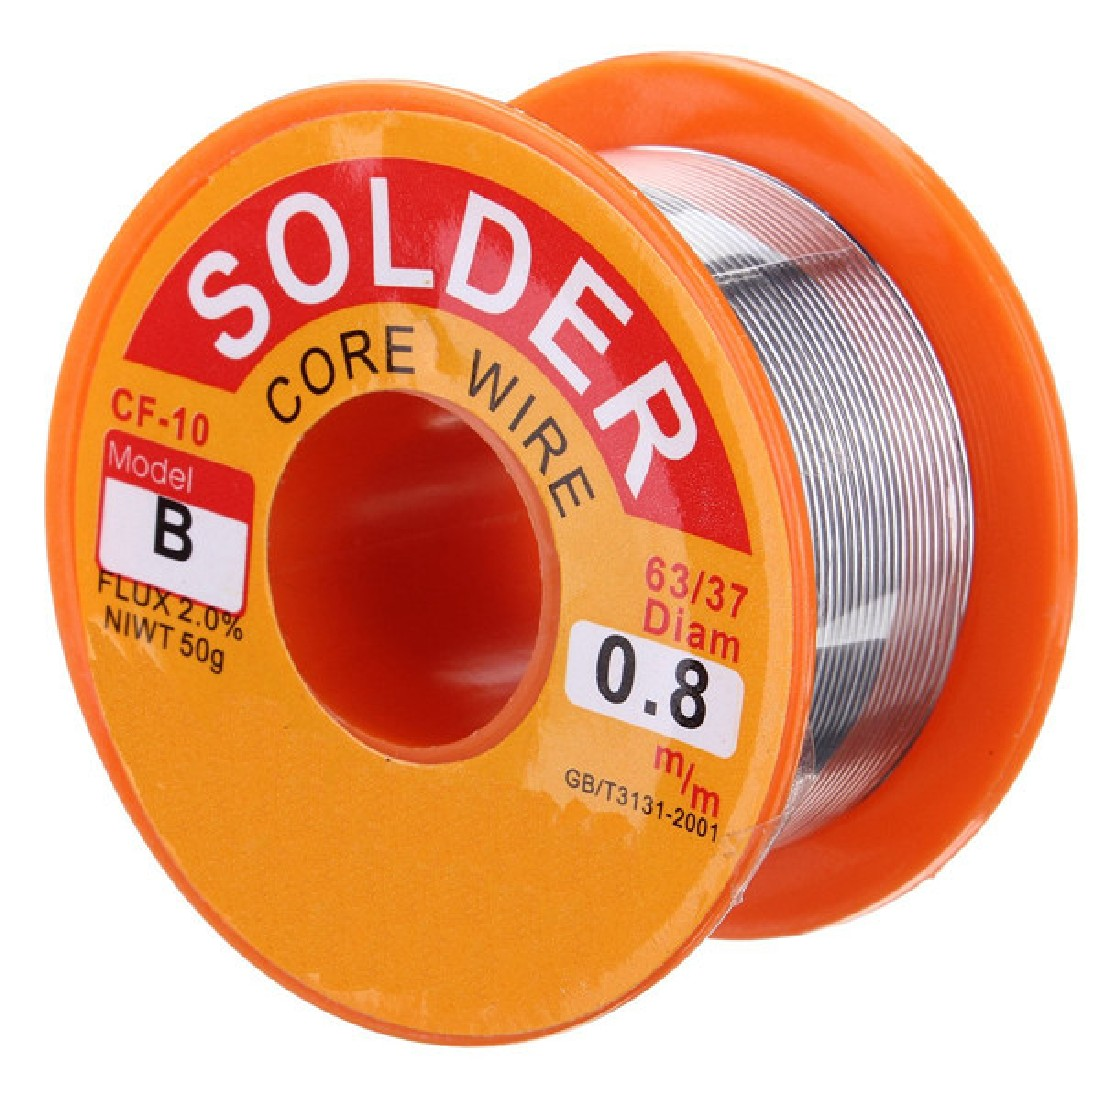 No-clean Tin 0.8mm Rosin Core Tin/Lead 0.8mm Alloy Rosin Roll Flux Solder Wire Reel Welding Line Solder Wire Clean Rosin Core стоимость